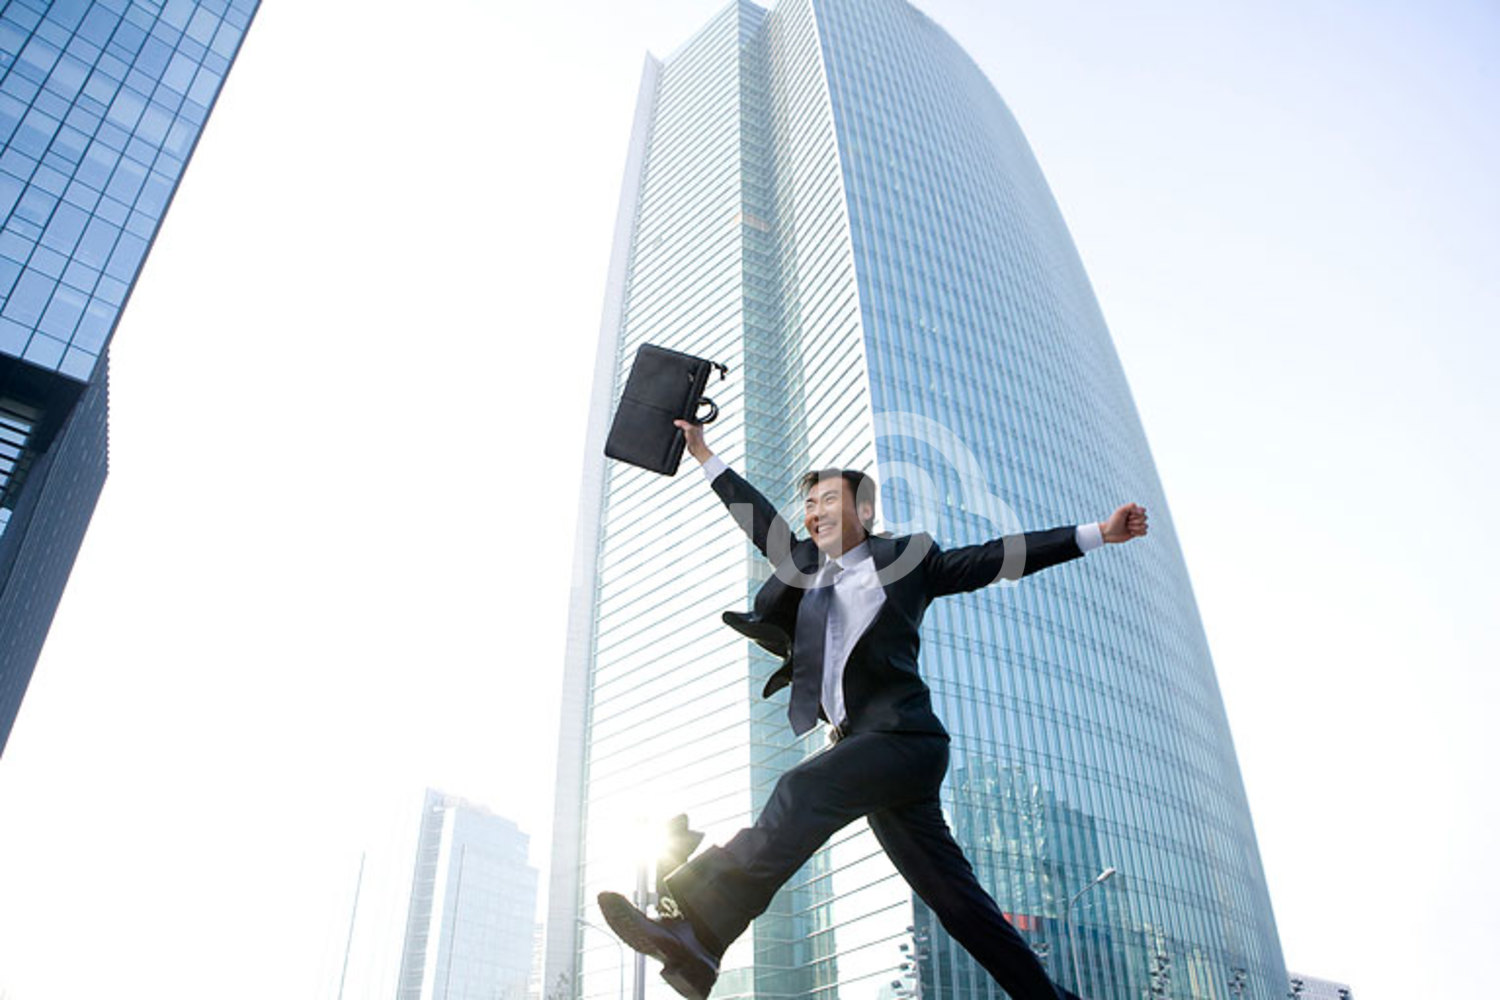 Chinese businessman jumping in front of tall building